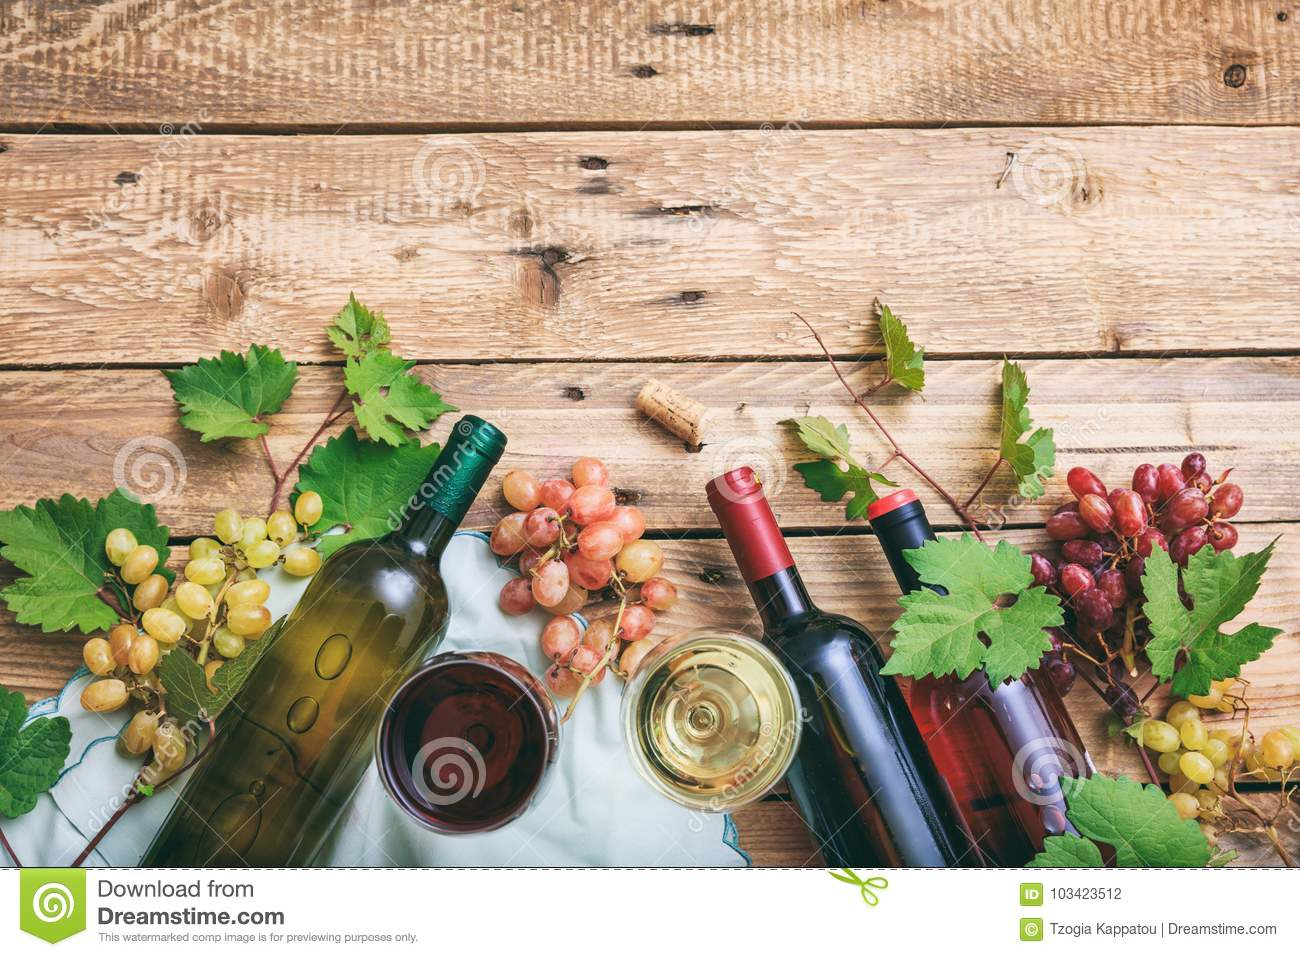 Red and white wine glasses and bottles on wooden background, copy space. Fresh grapes and grape leaves as decoration